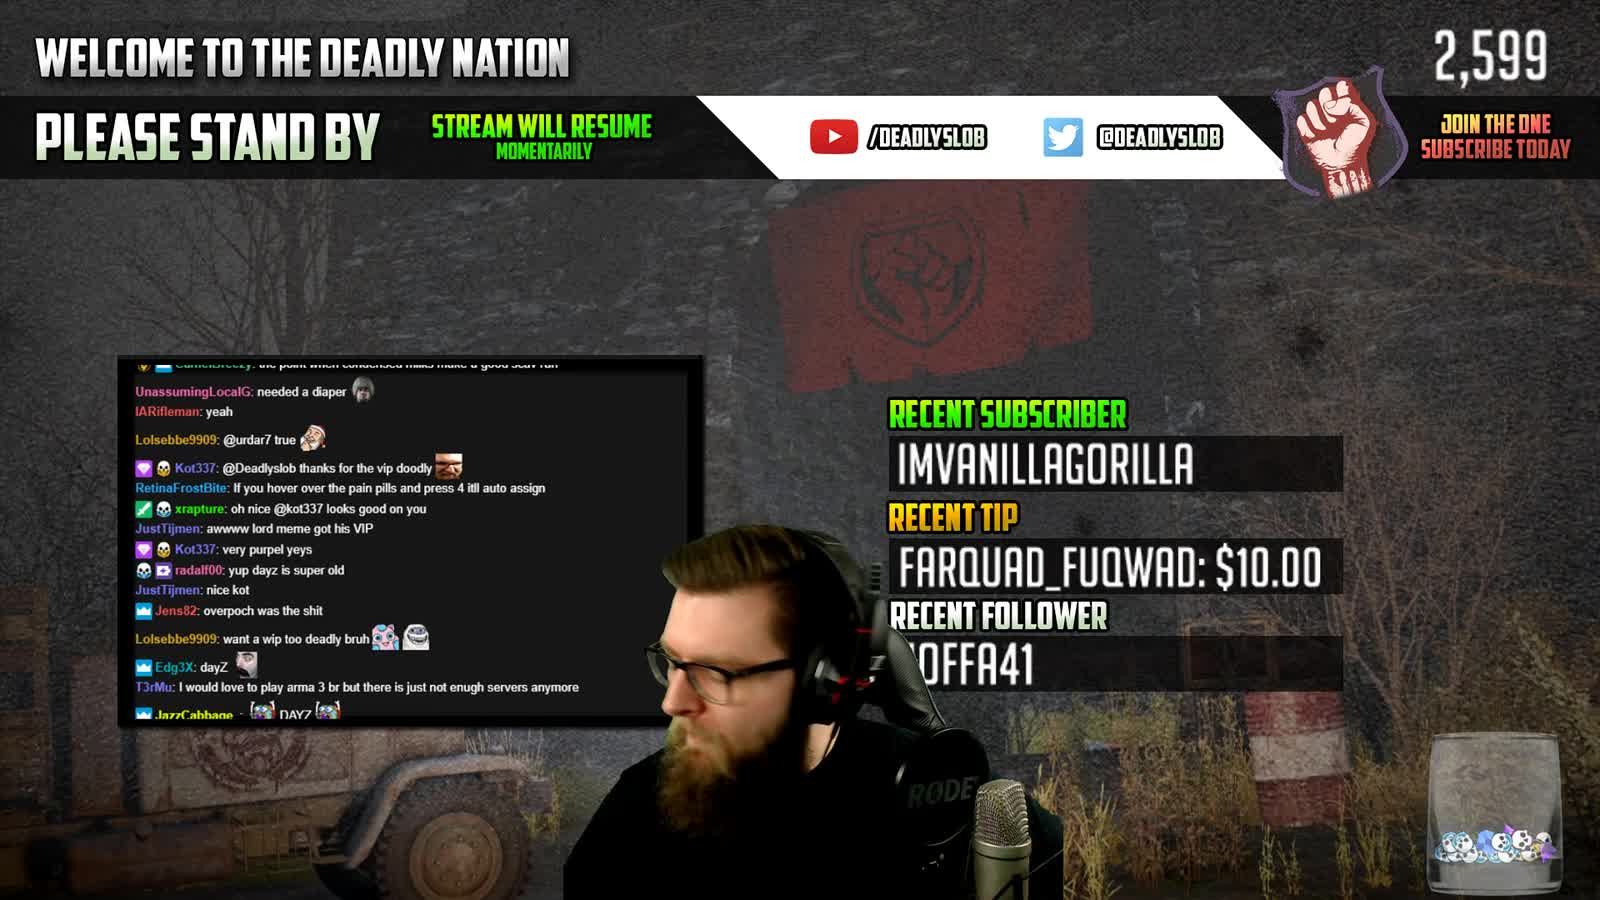 Deadlyslob - script kiddie or legit player? - Twitch